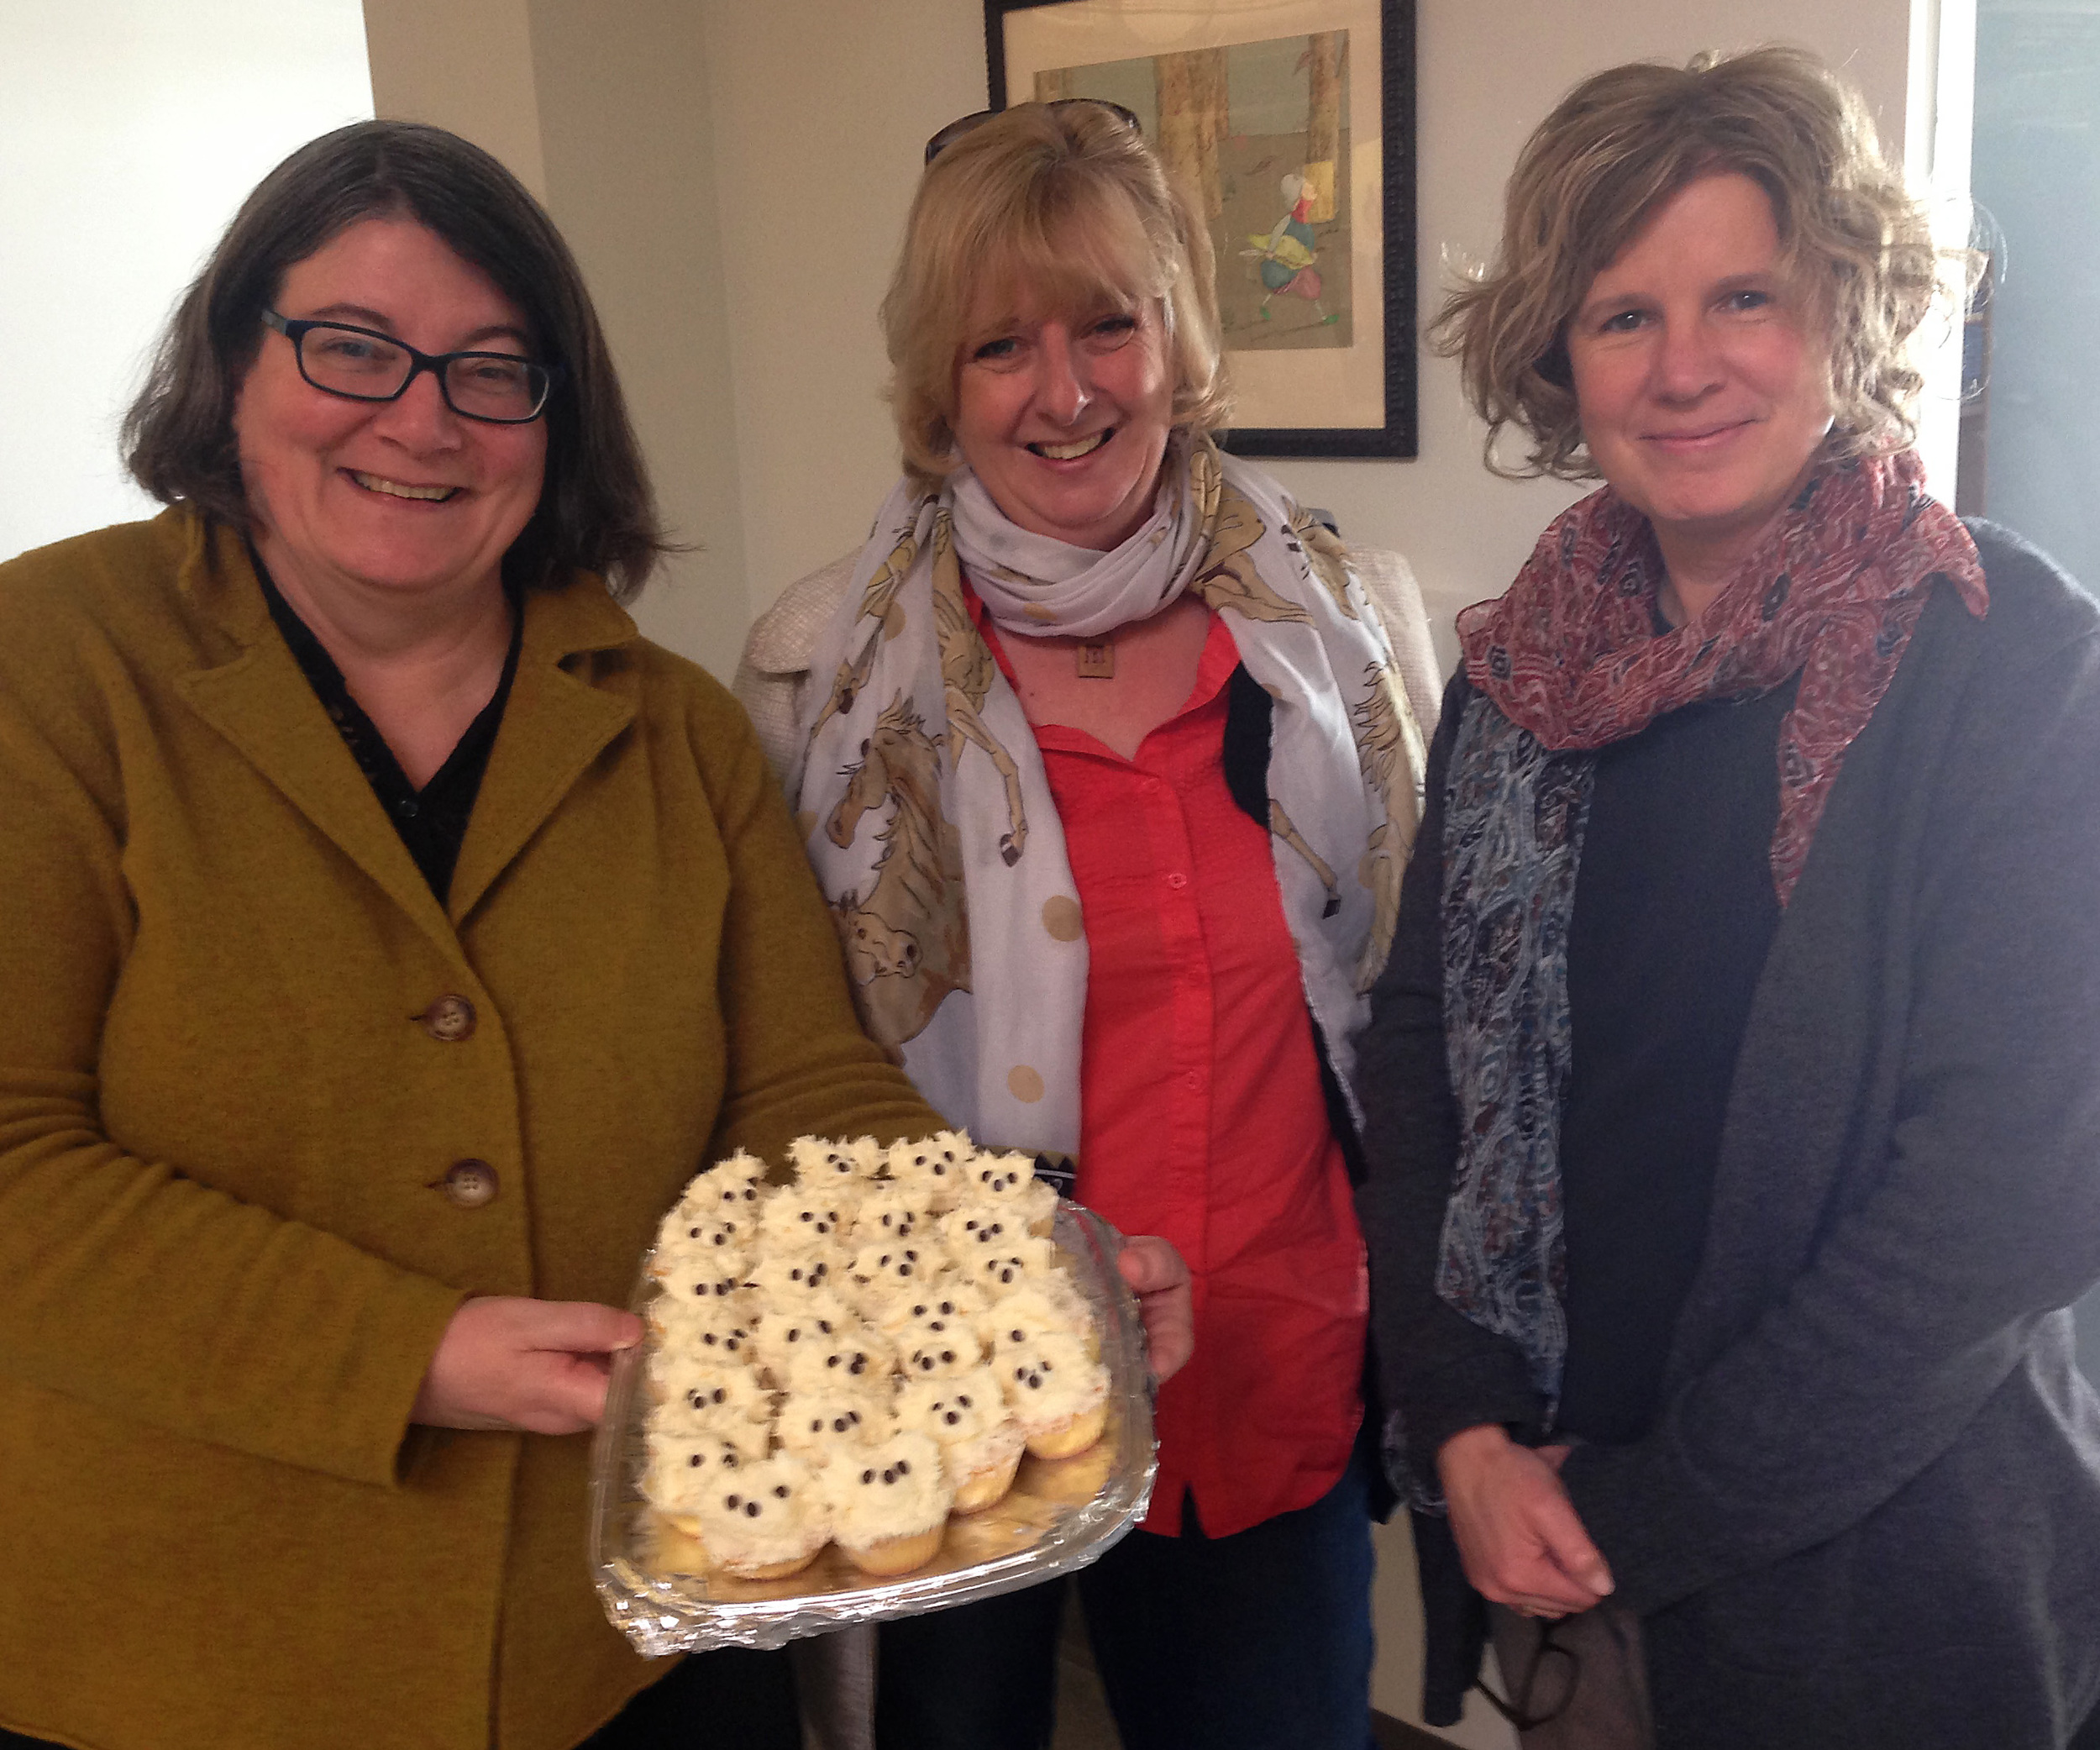 with Elizabeth Bicknell, Ann Stott and Toby cakes at Candlewick Press, Boston.